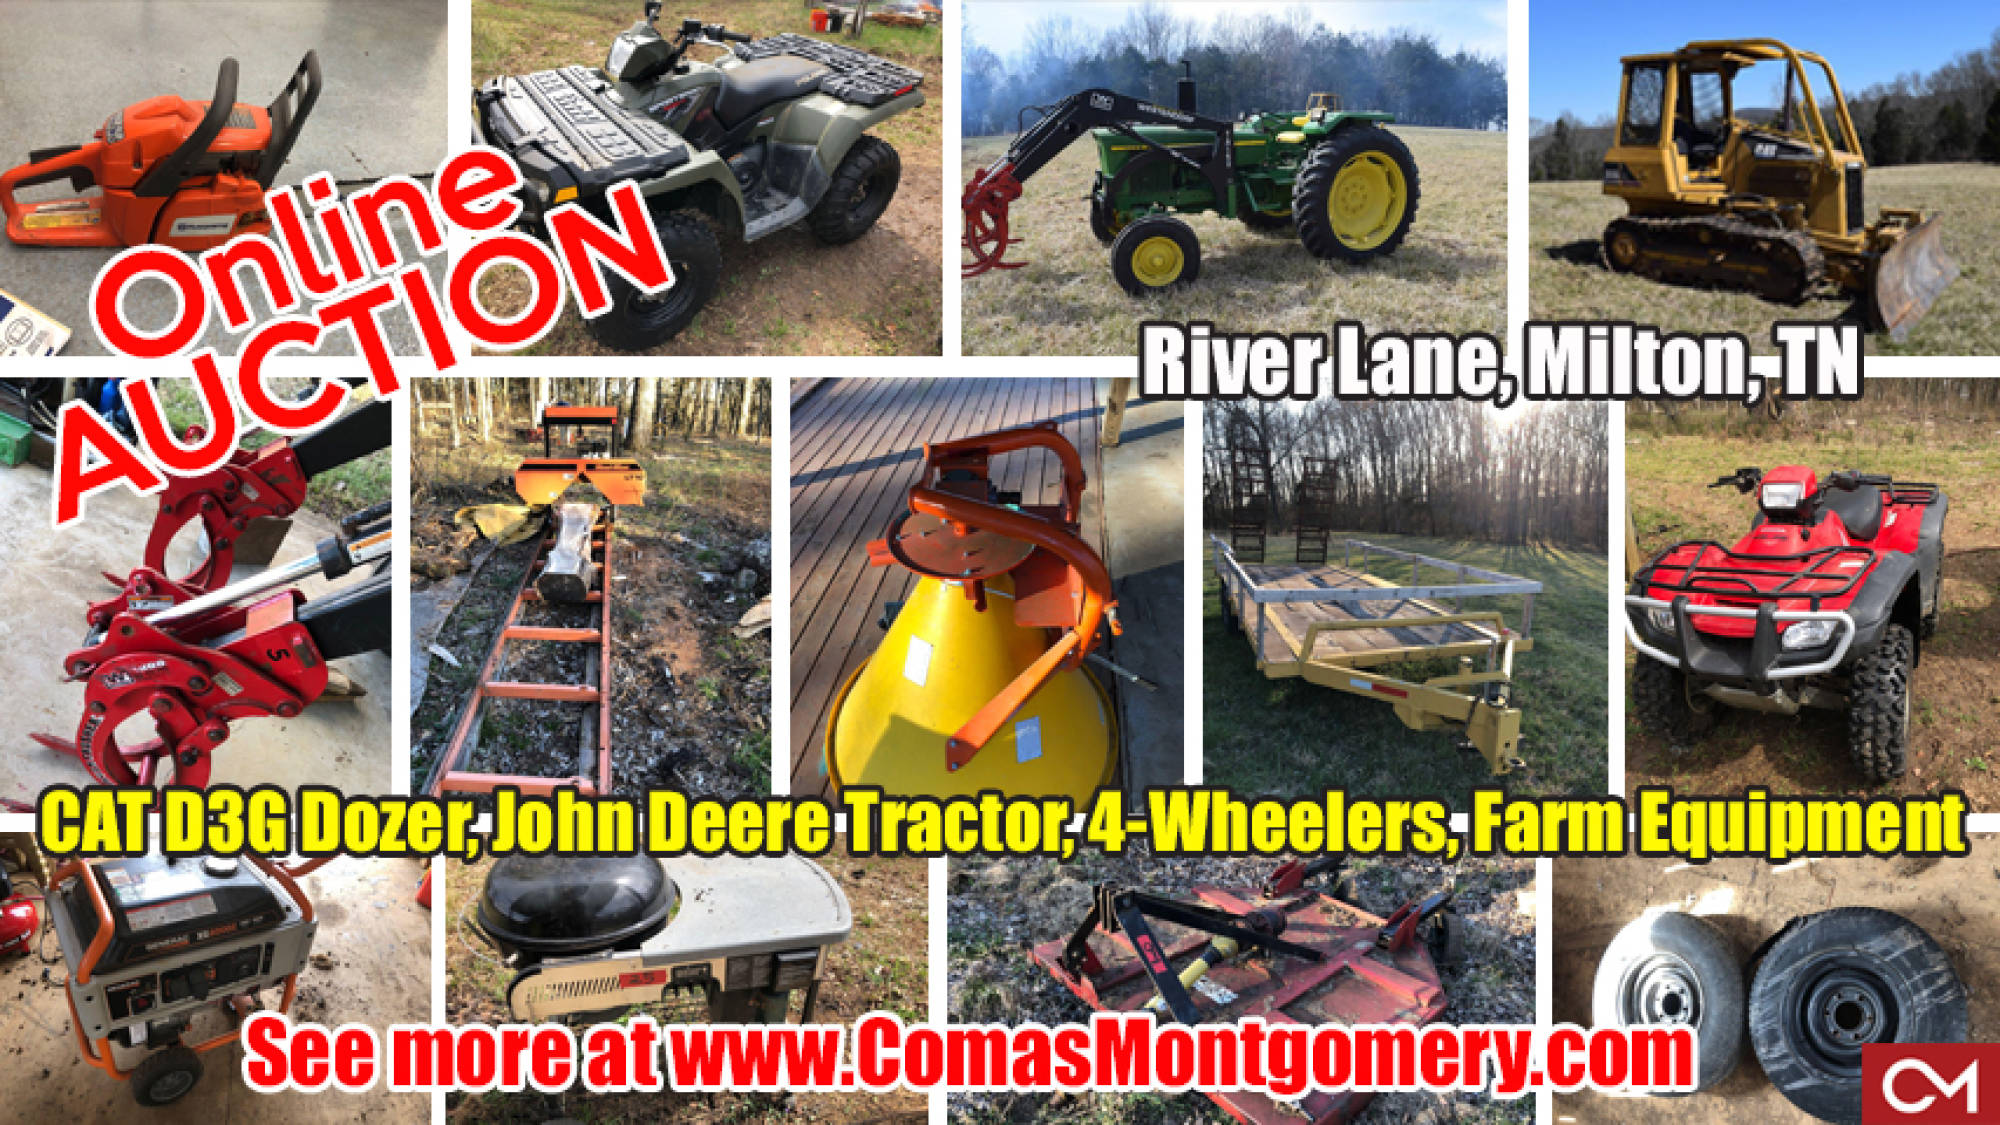 River, Lane, Equipment, Tractor, Dozer, Tools, Farm, Auger, 4-Wheelers, ATV, For Sale, Generator, Saw, Cutter, Farm, Selling, Online, Auction, Murfreesboro, Milton, Tennessee, Comas, Montgomery